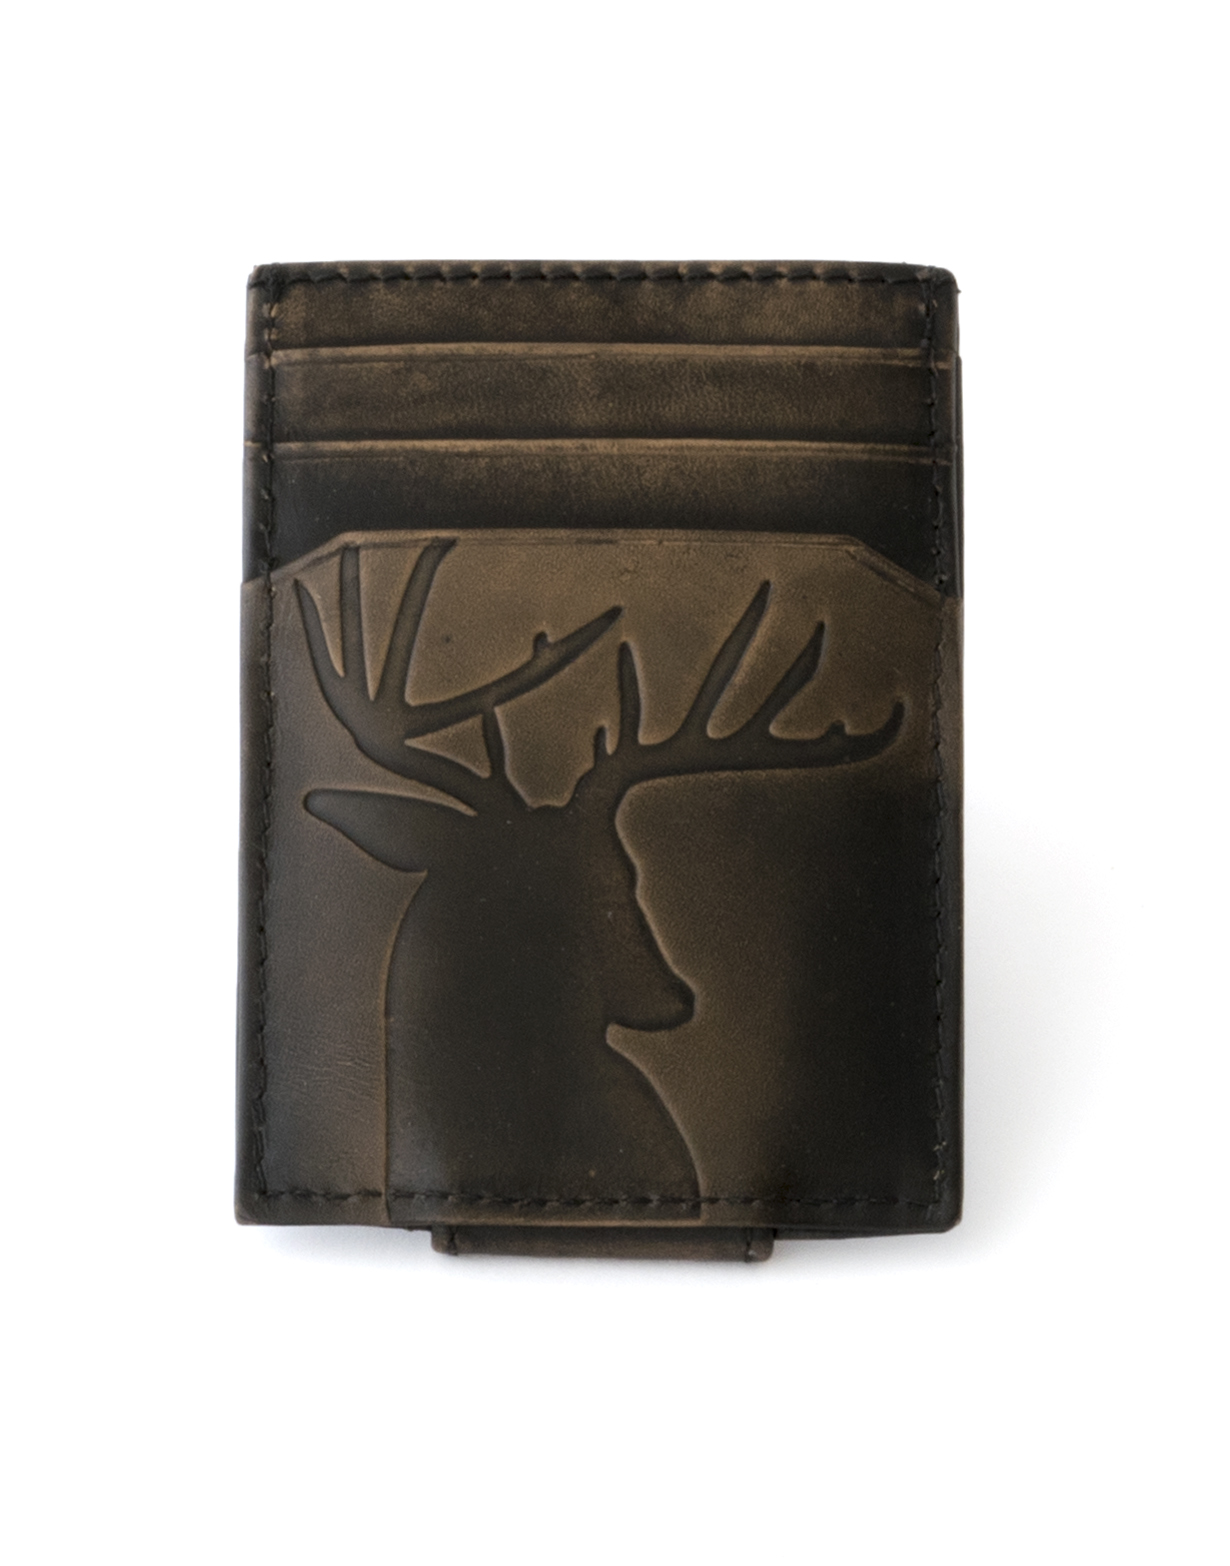 House of Jack Wallet